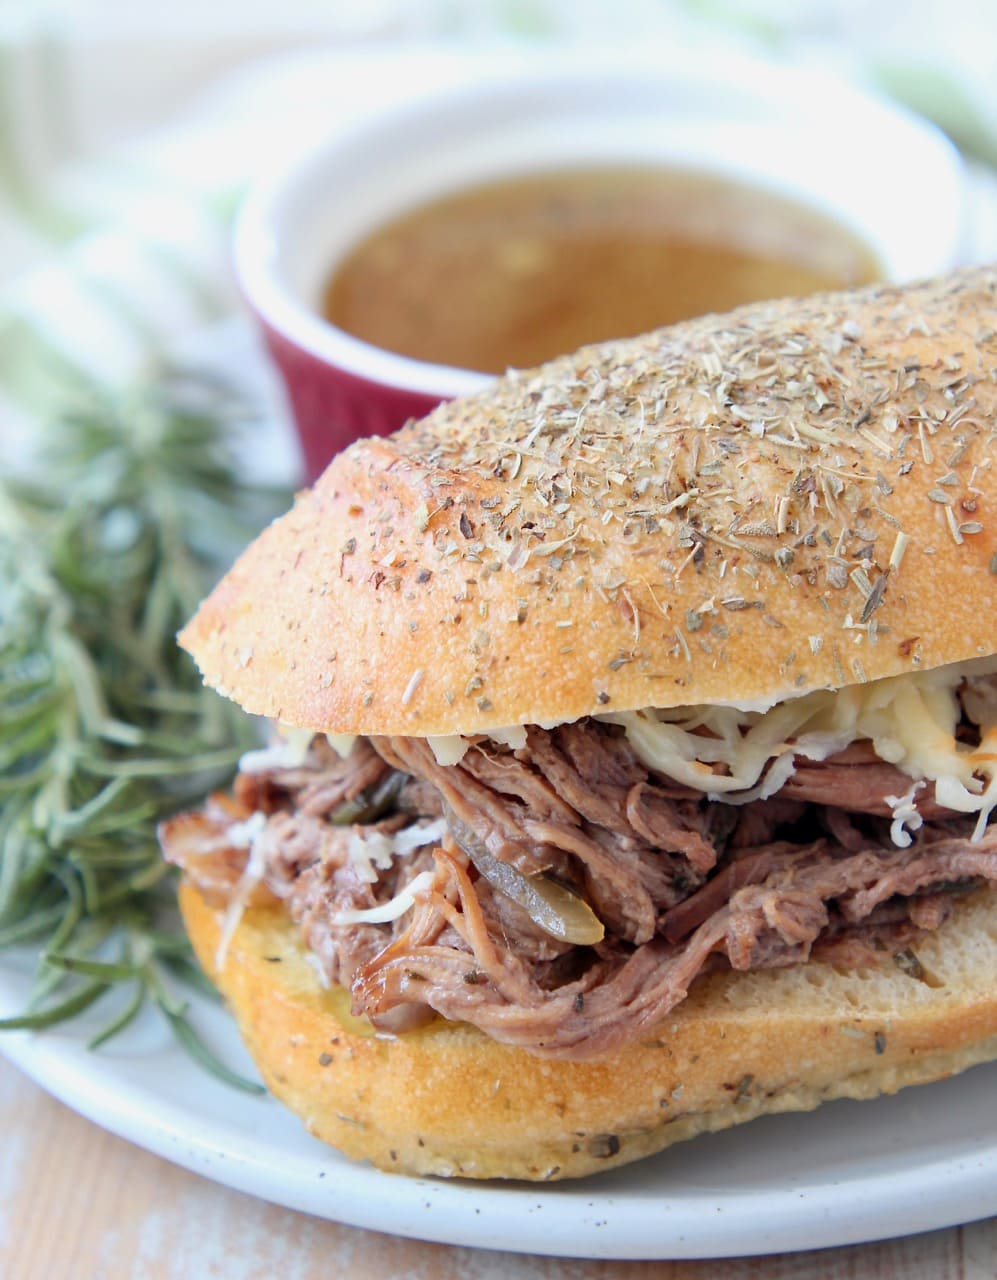 Shredded tri tip sandwich on plate with fresh rosemary